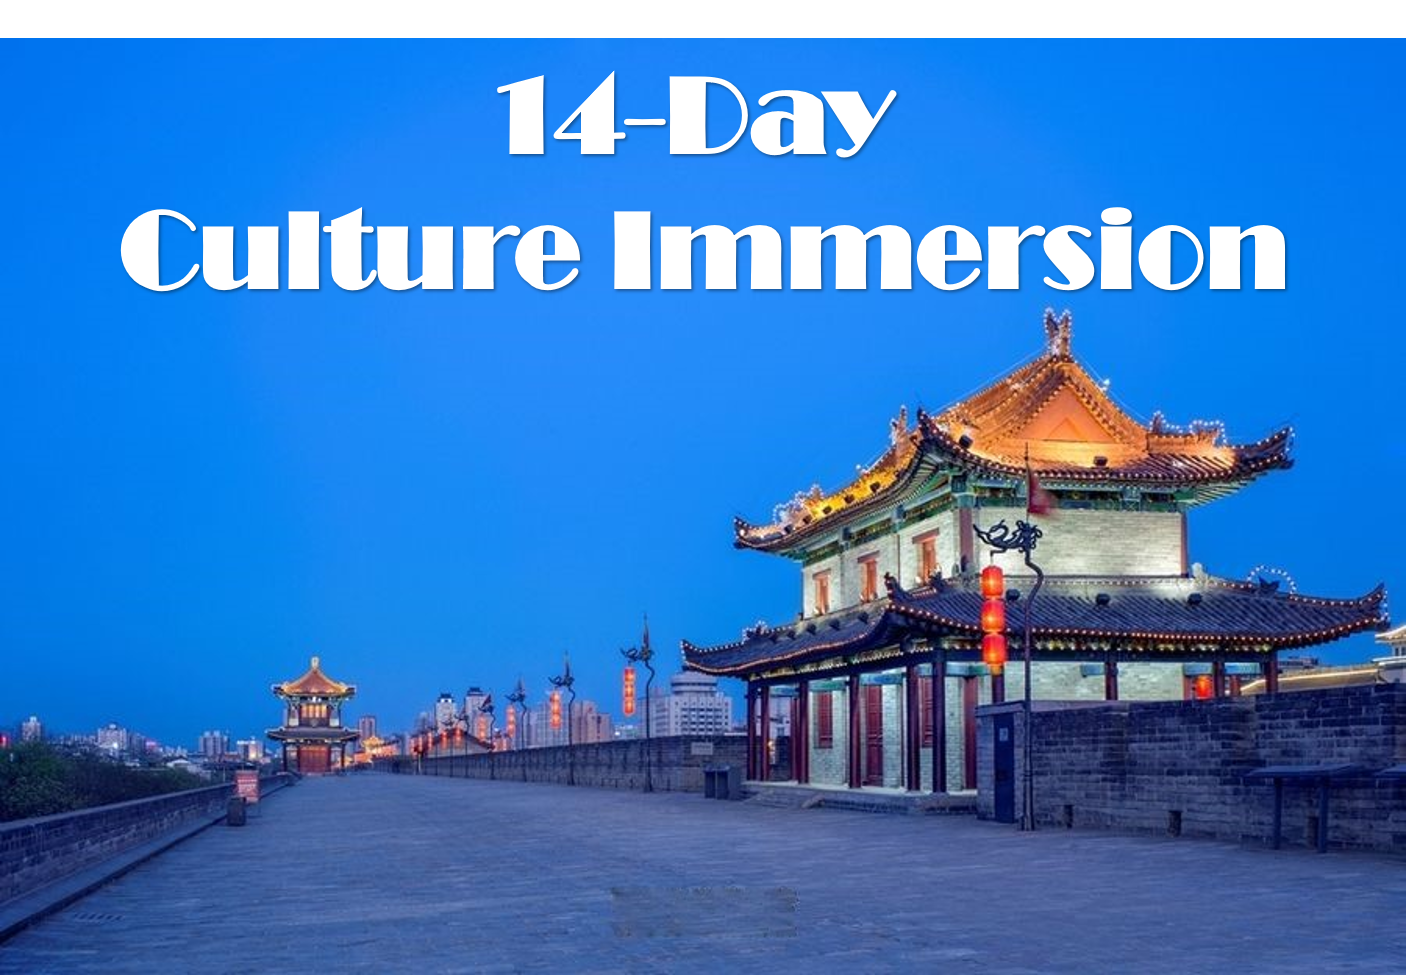 cultureimmersion